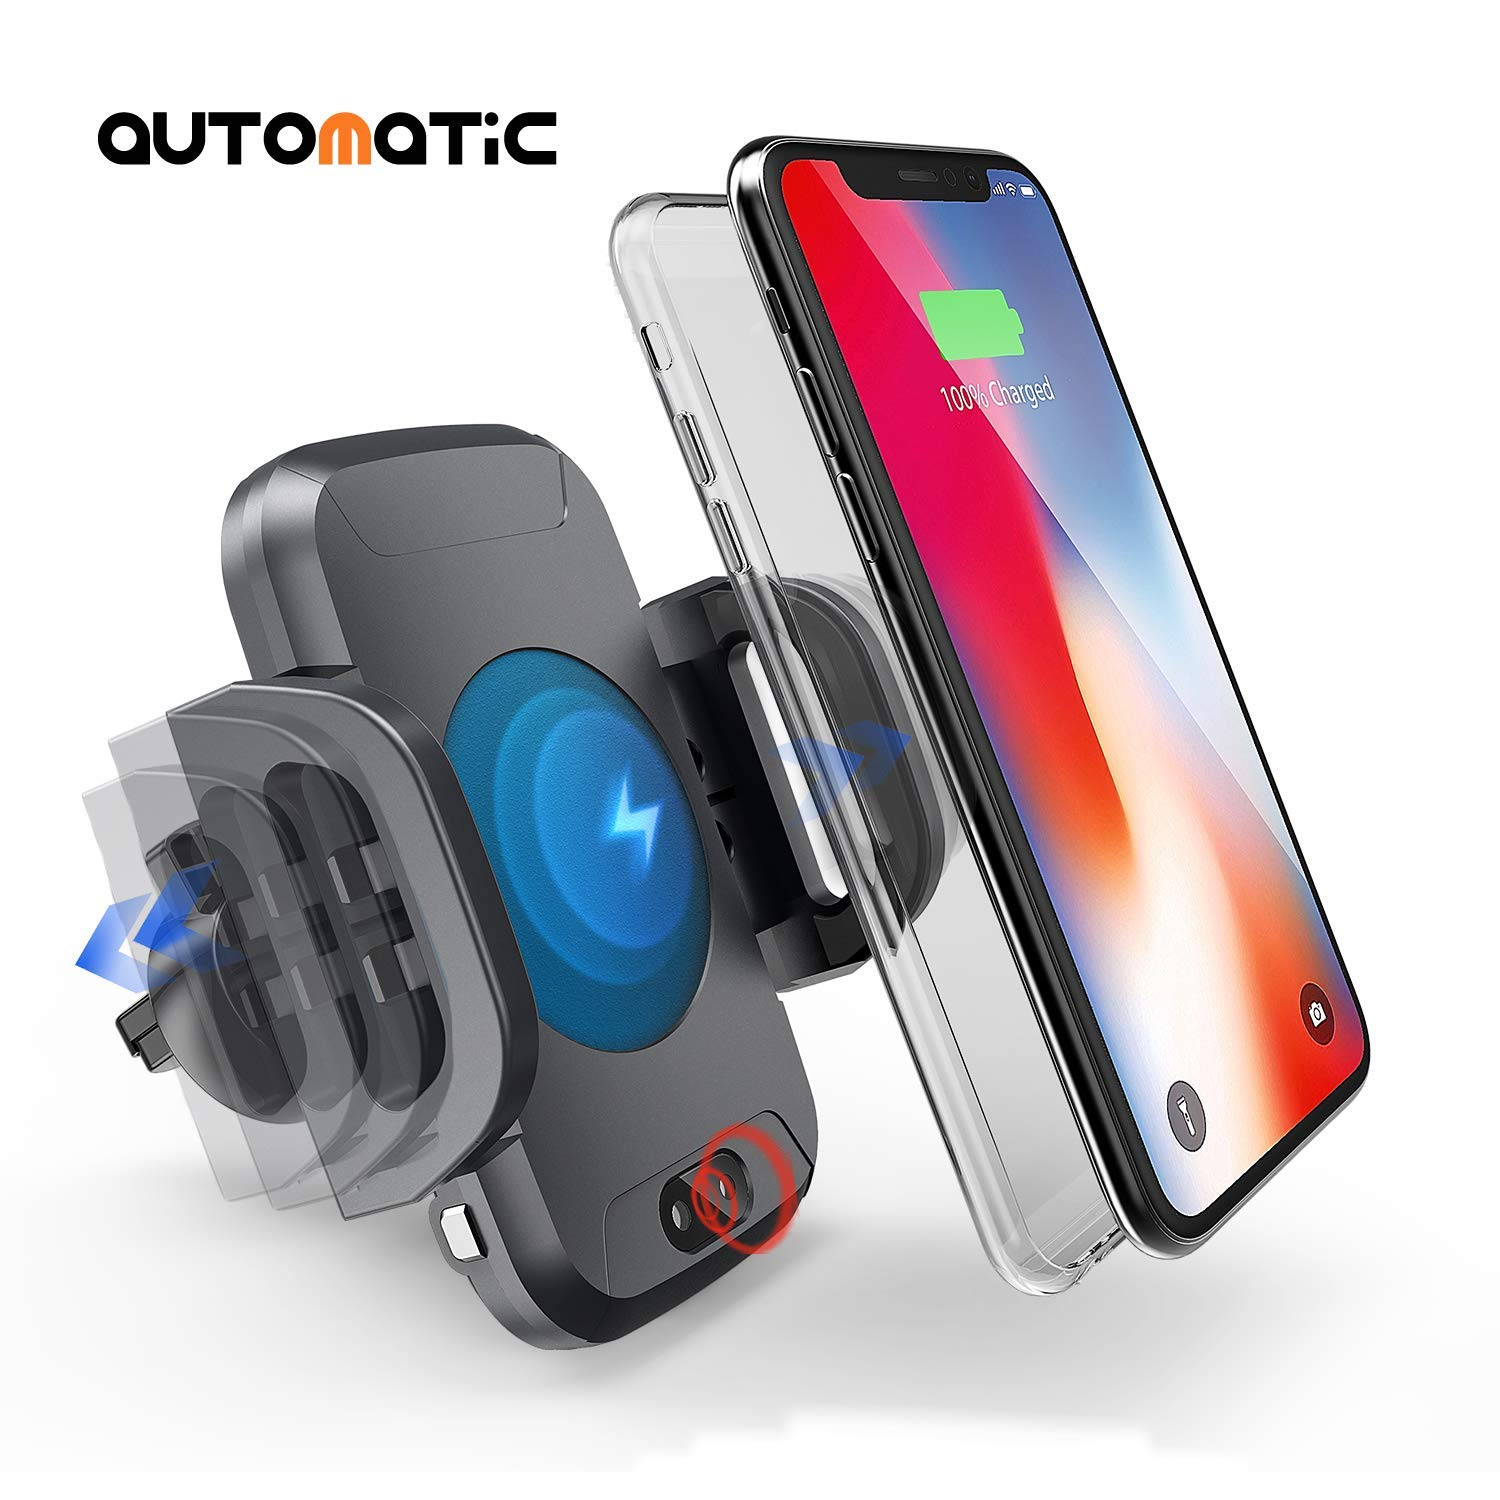 Wireless Car Charger Mount, DREAMORE Automatic Car Wireless Charger Air Vent Phone Holder, 10W Fast Wireless Charging for Samsung Galaxy S9 S8 S7 Edge, Note 8, Standard Charge for iPhone X, 8 Plus